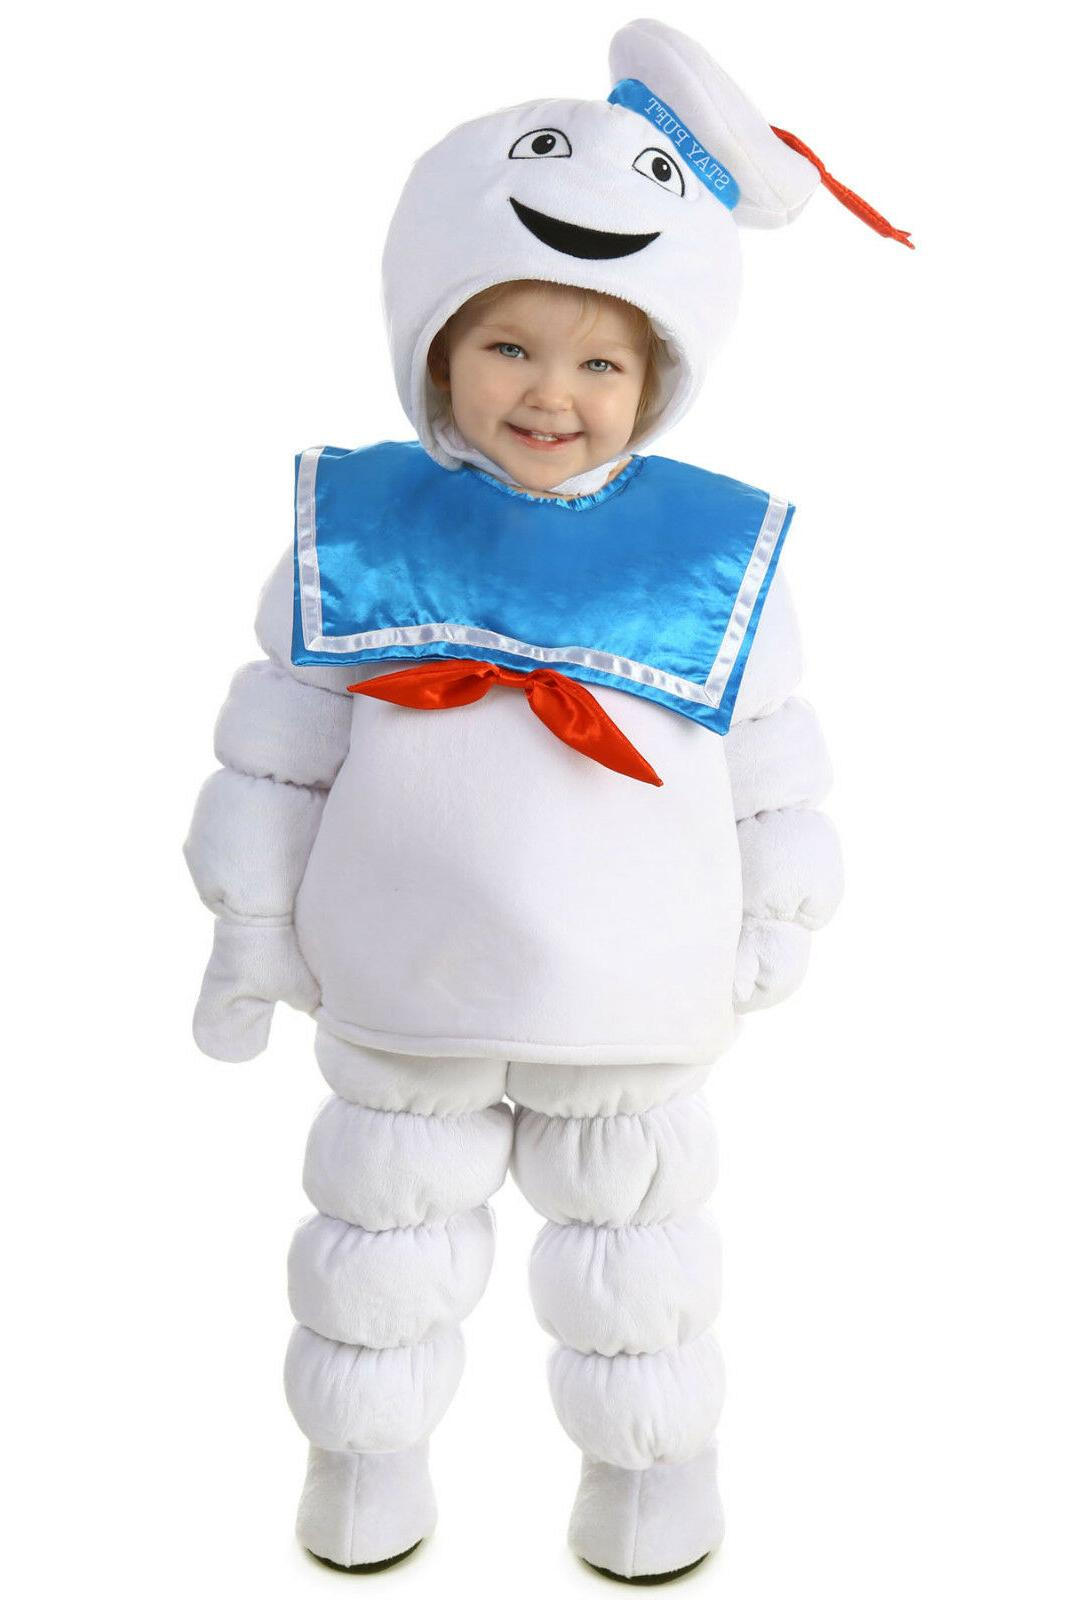 ghostbusters stay puft marshmallow man costume puffed